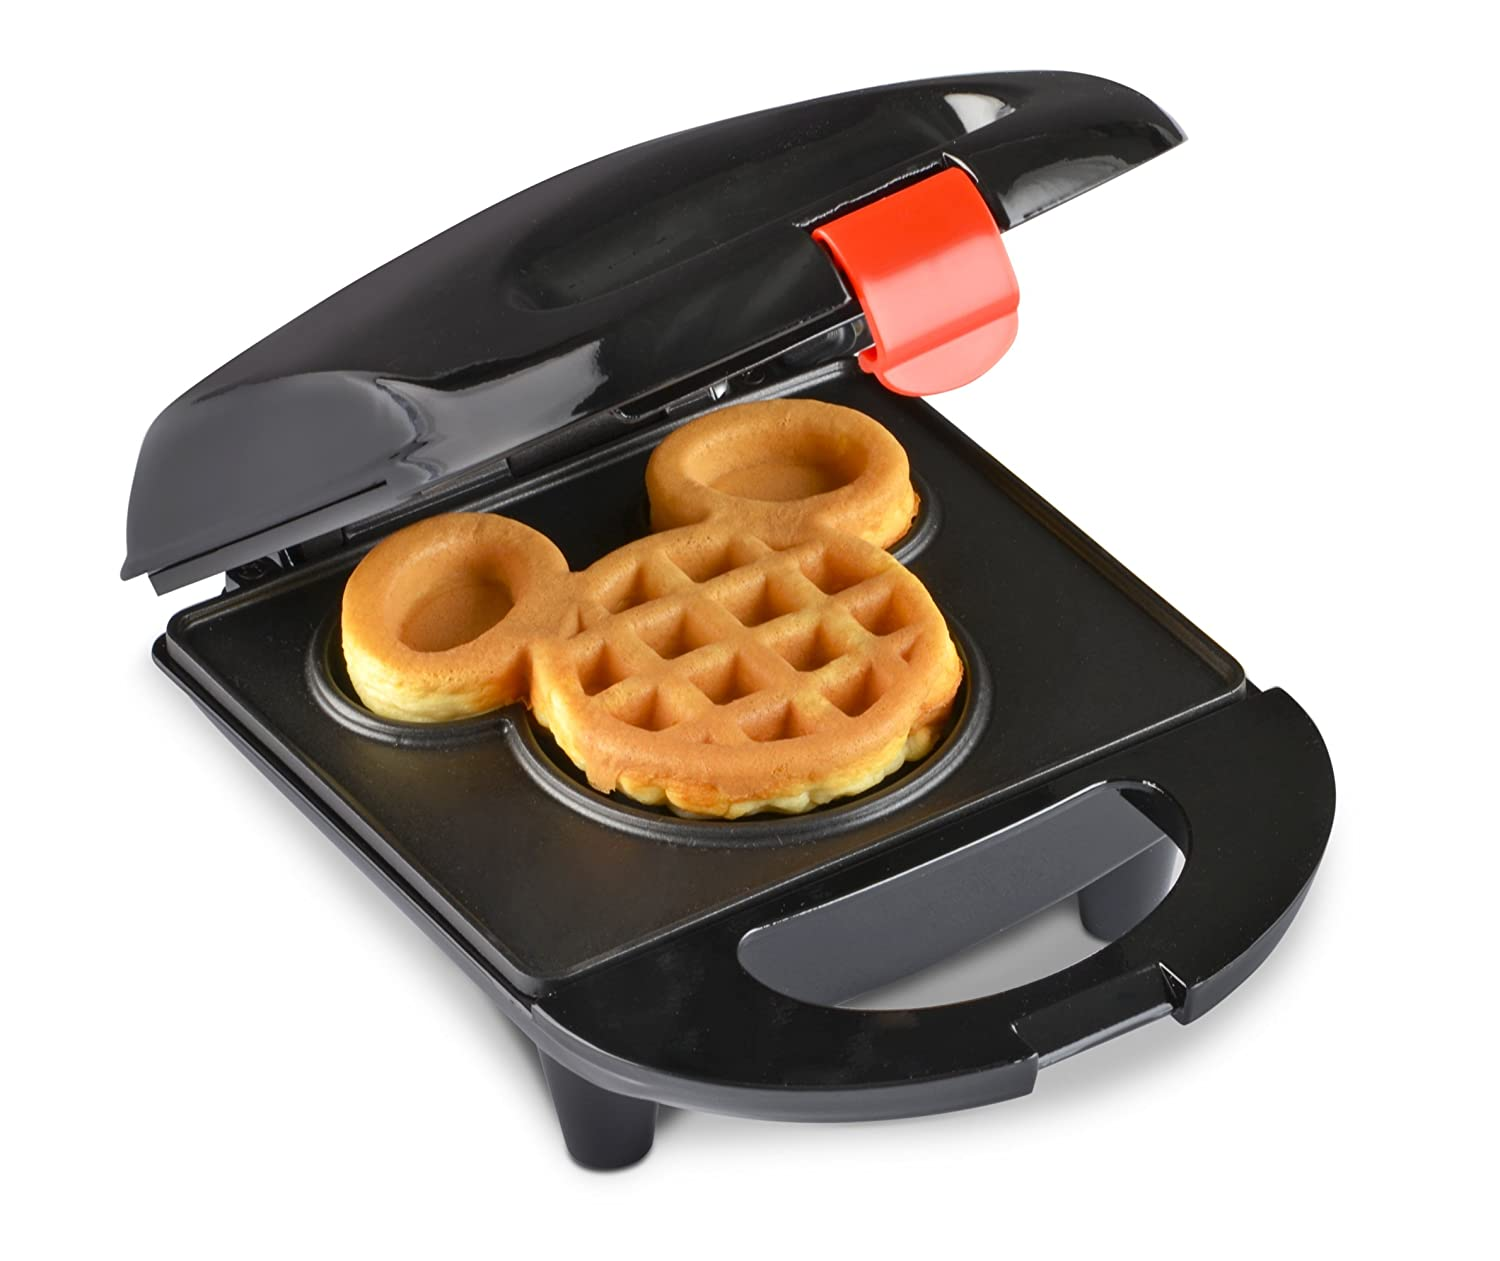 Uncategorized Disney Kitchen Appliances amazon com disney dcm 9 mickey mini waffle maker black kitchen dining